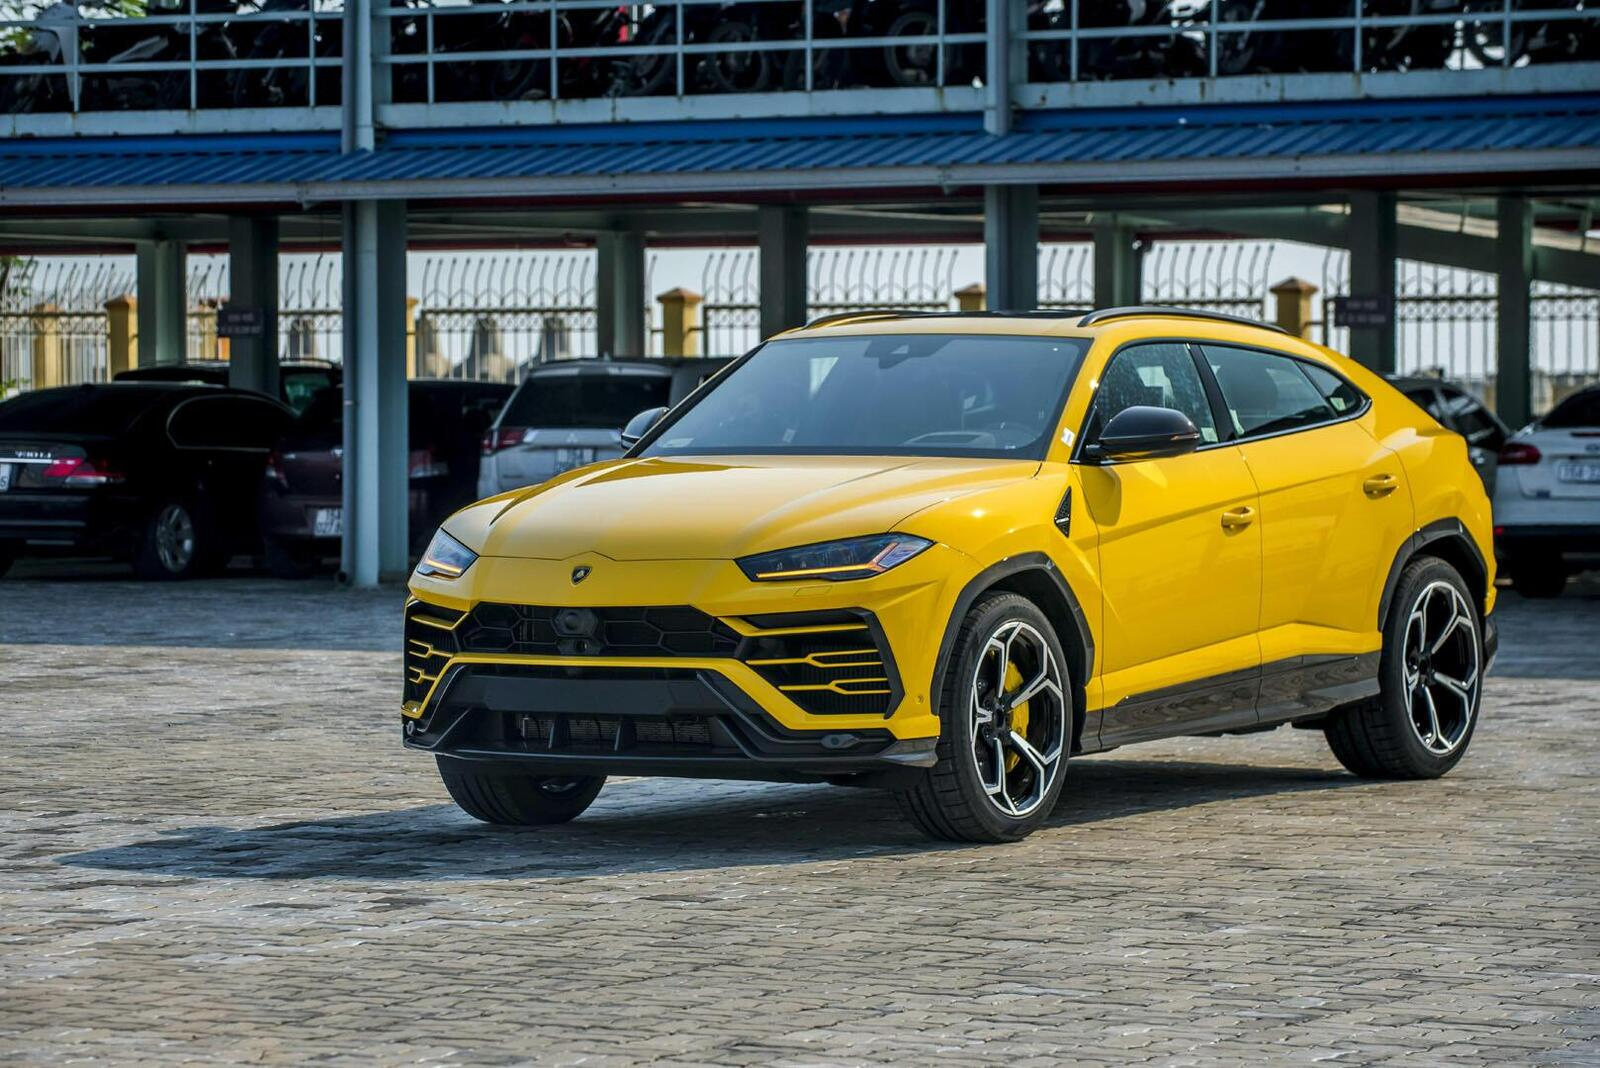 https://cdn.dailyxe.com.vn/image/can-canh-lamborghini-urus-thu-4-ve-viet-nam-mau-noi-that-gay-choang-16-81365j2.jpg?1568181228174